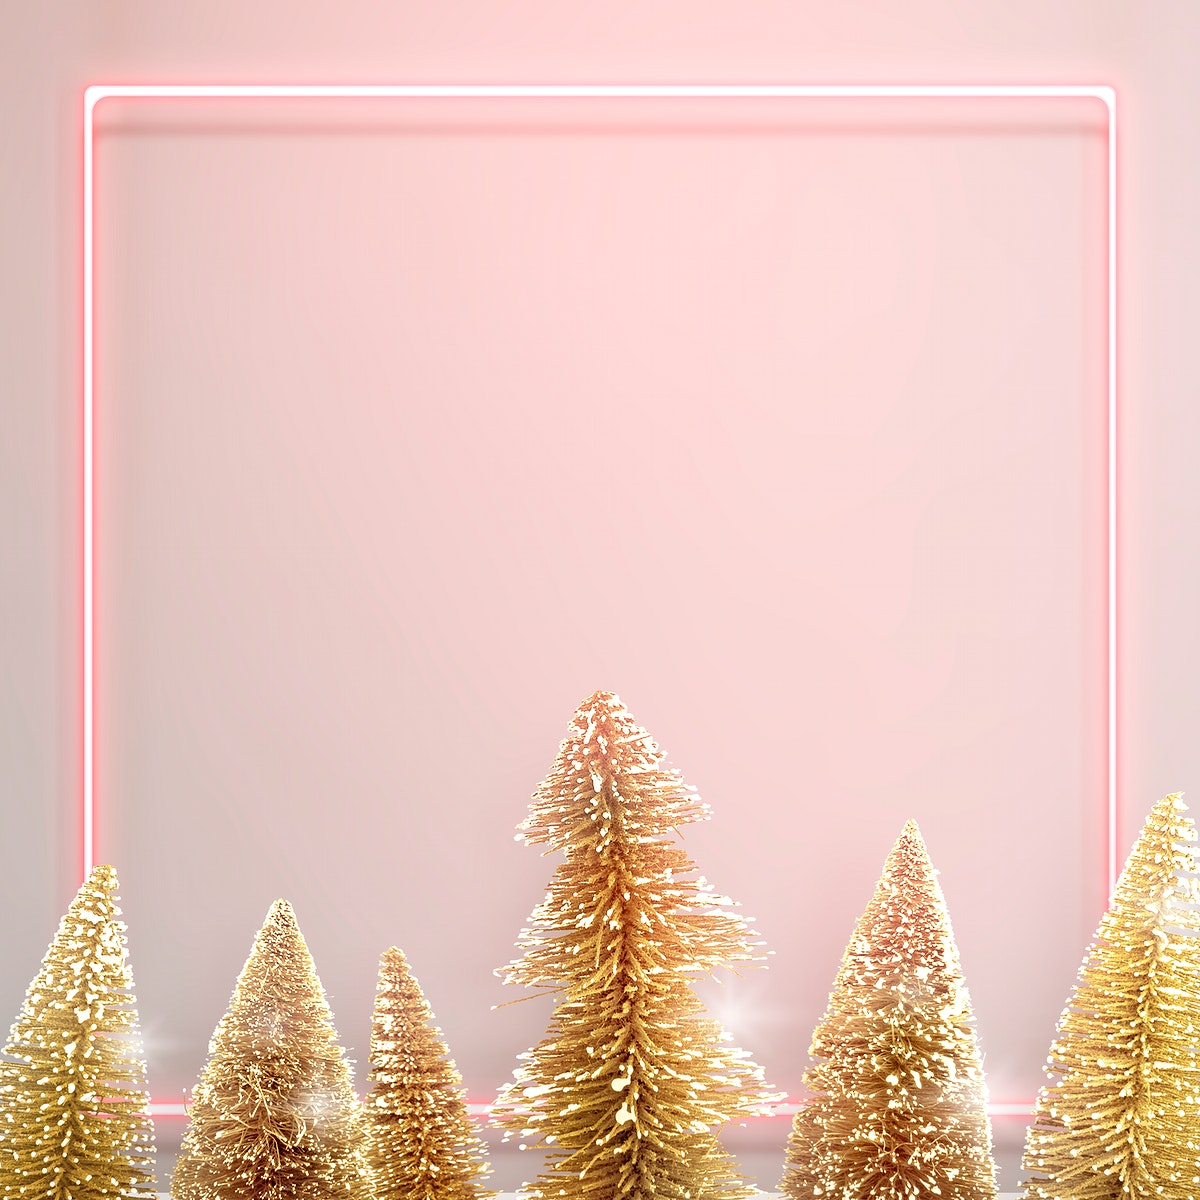 Pink neon frame with gold Christmas trees background illustration